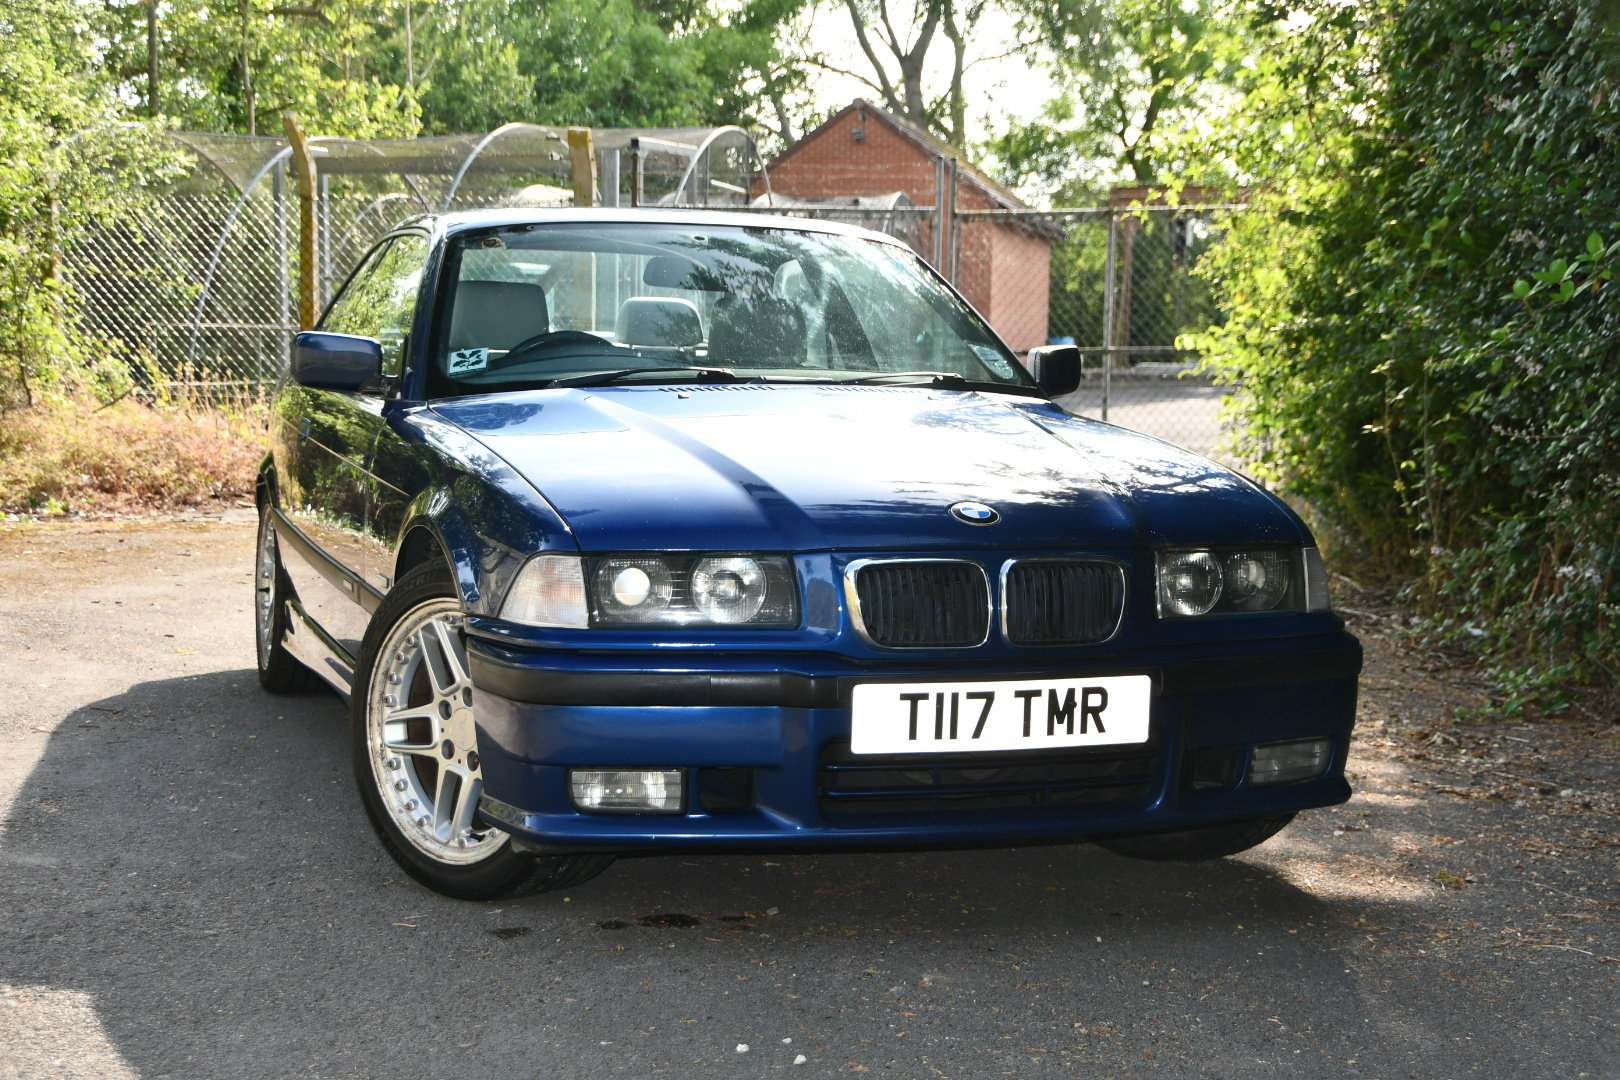 1999 Bmw 2.8i sport avus blue manual SOLD (picture 1 of 6)